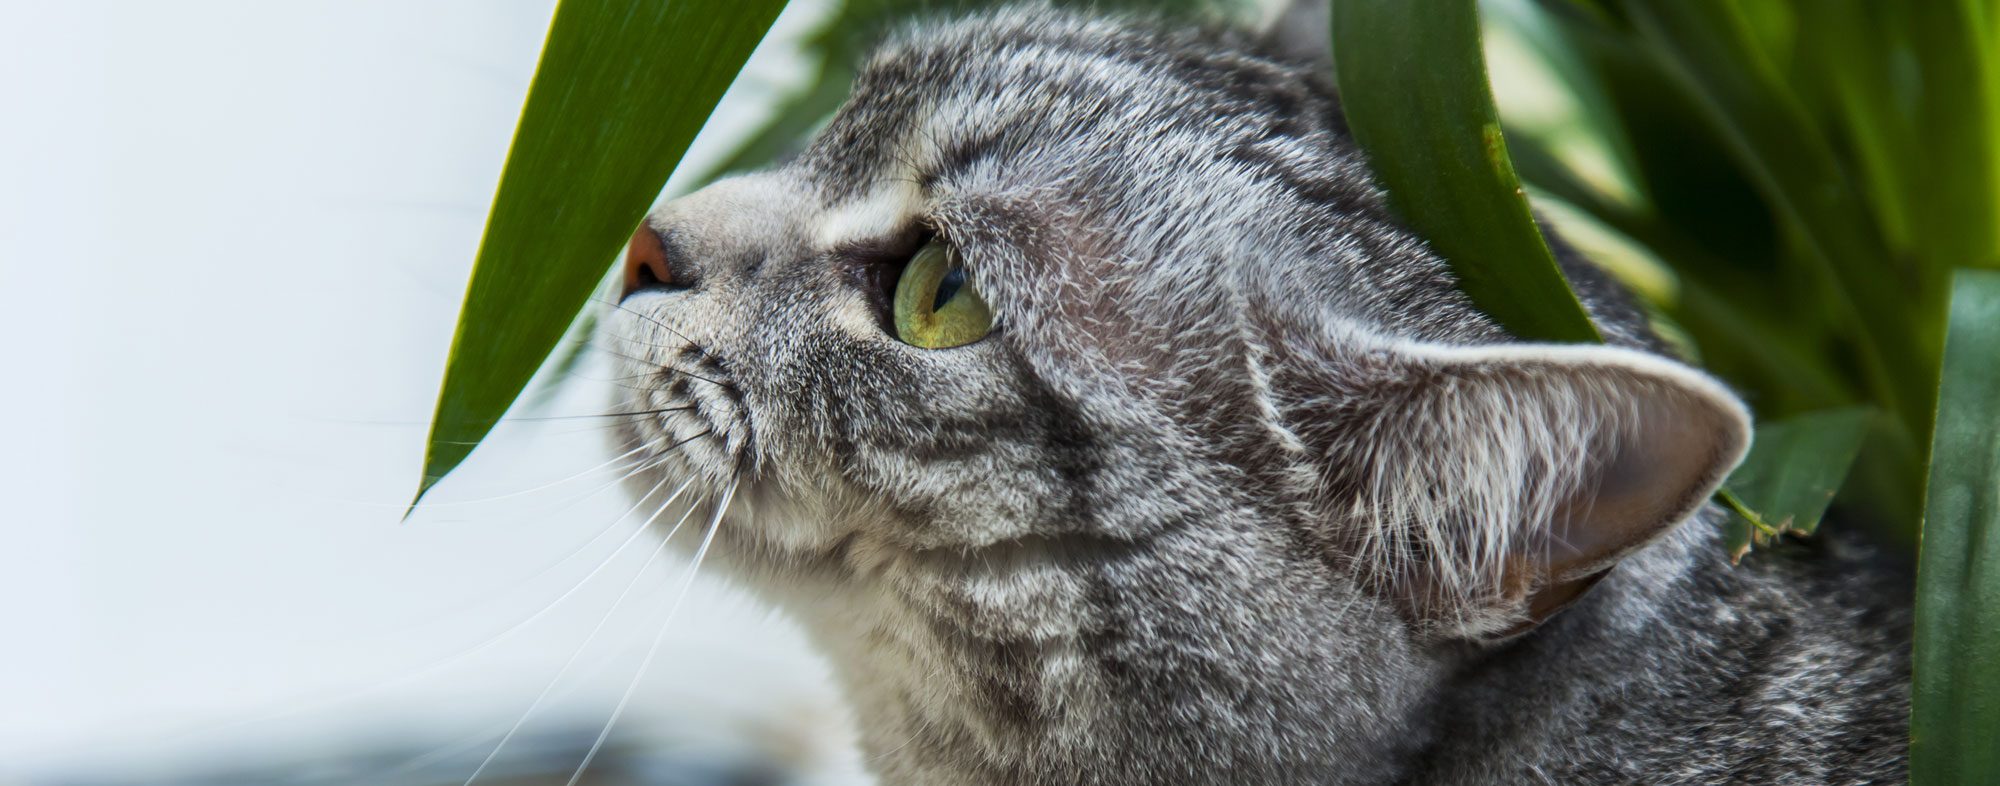 Curious cat near the leaf of a house plant. Learn more about pet friendly indoor plants.